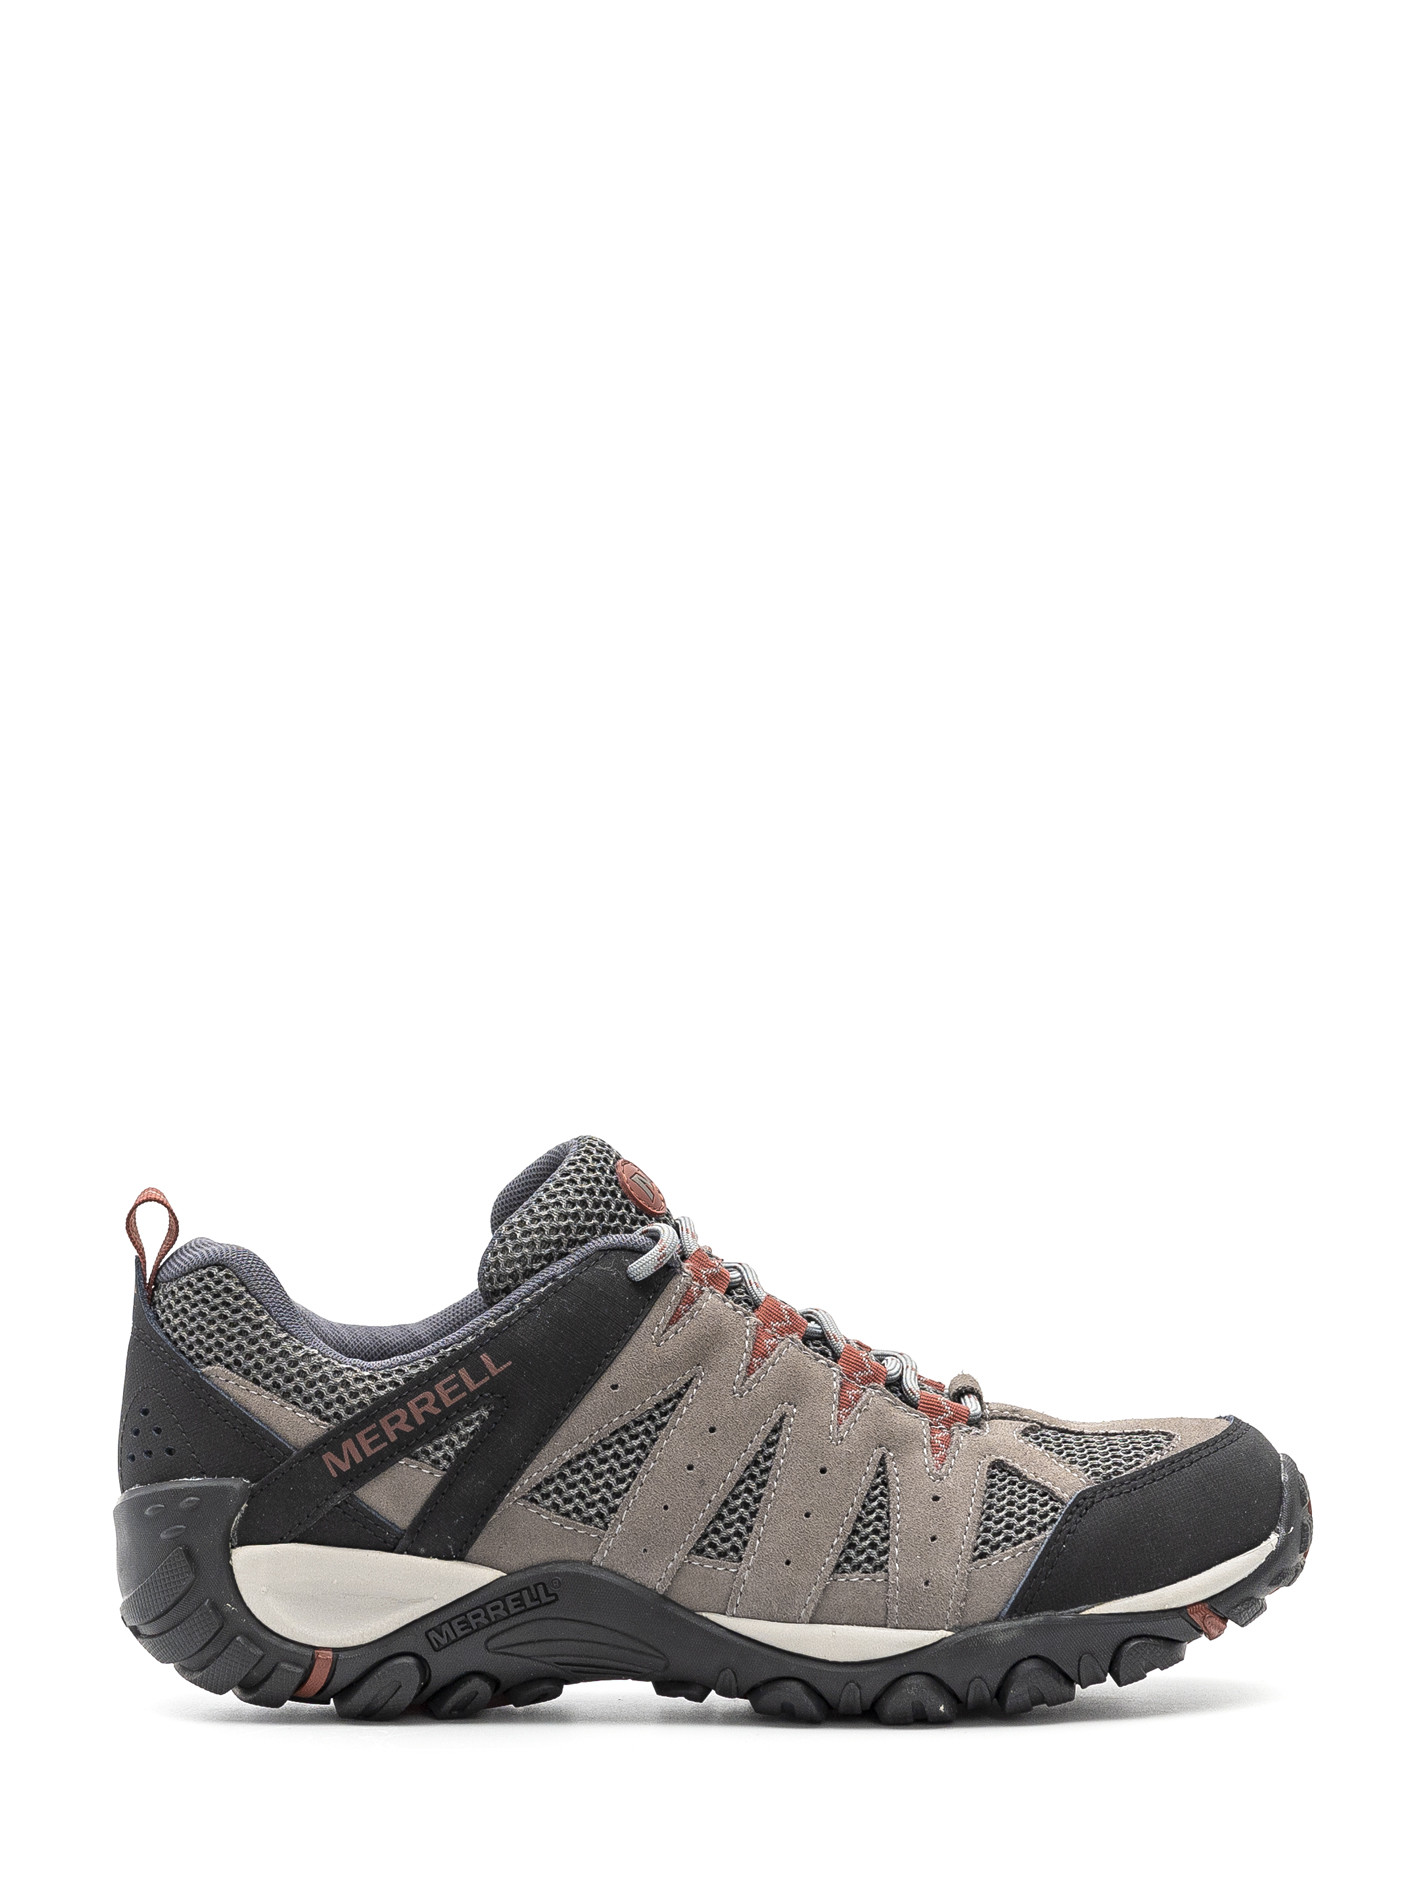 Accentor 2 vent - Charcoal